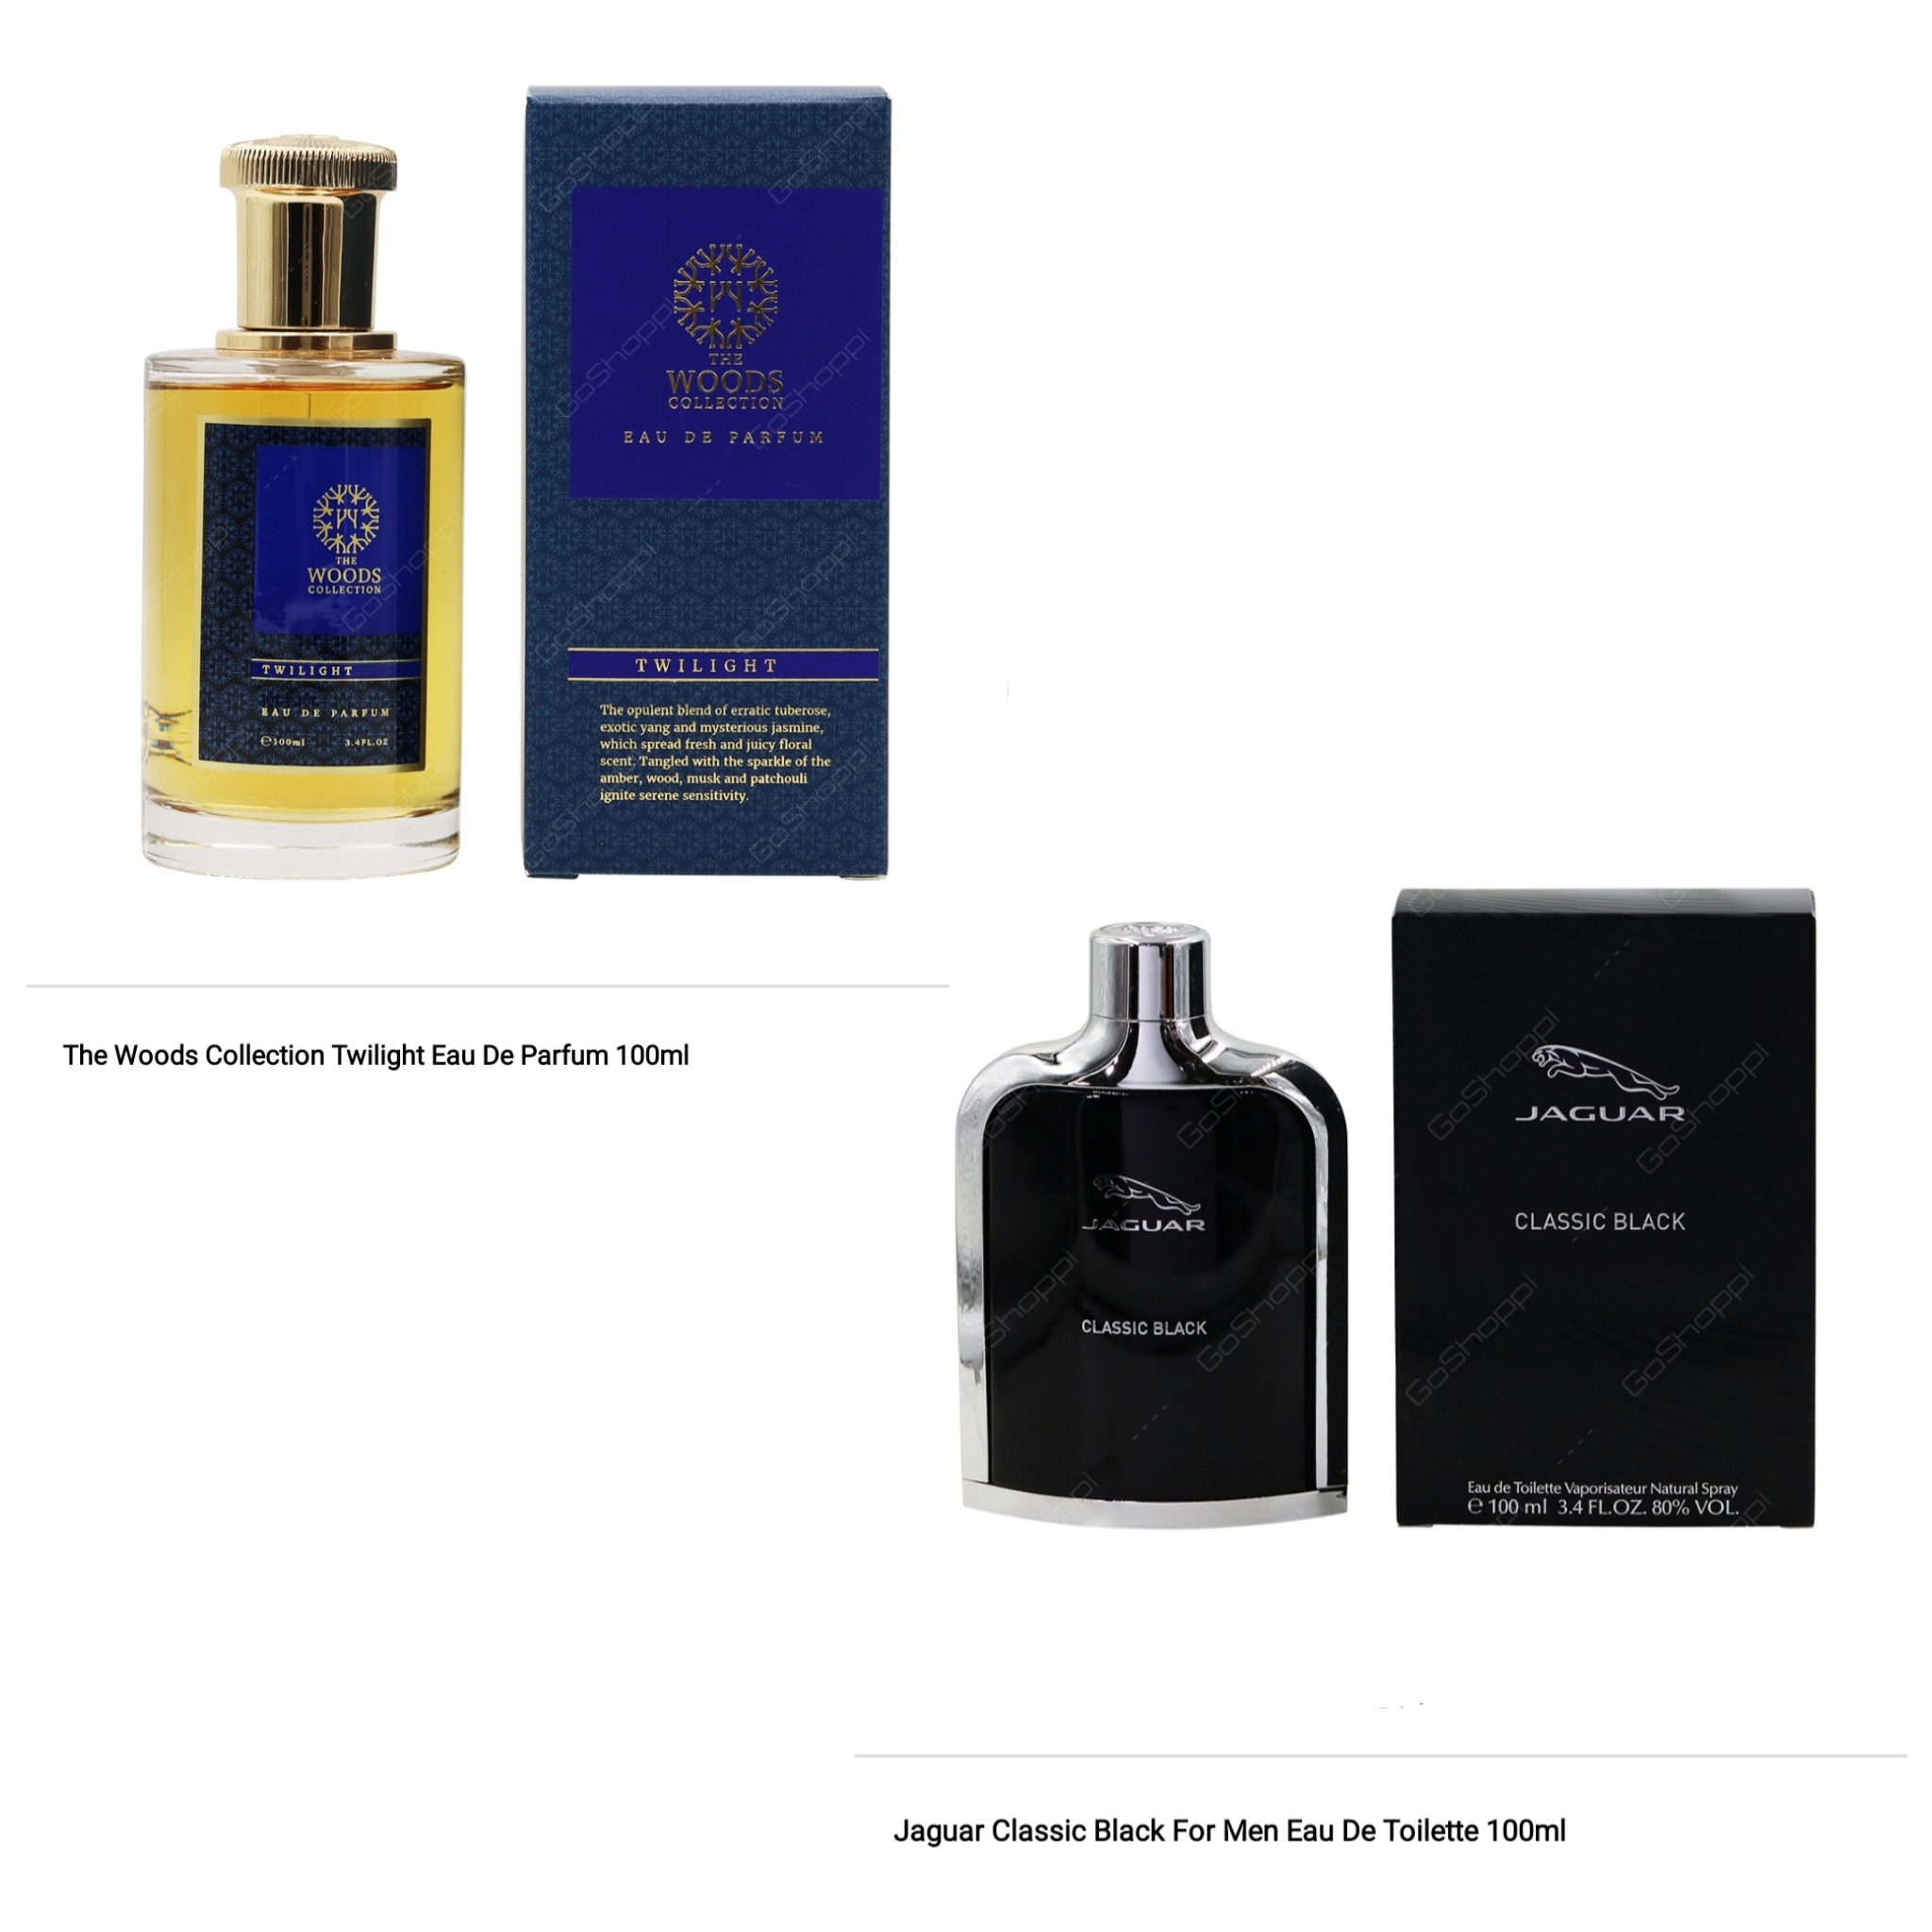 The Woods Collection & Jaguar Classic Black Offer